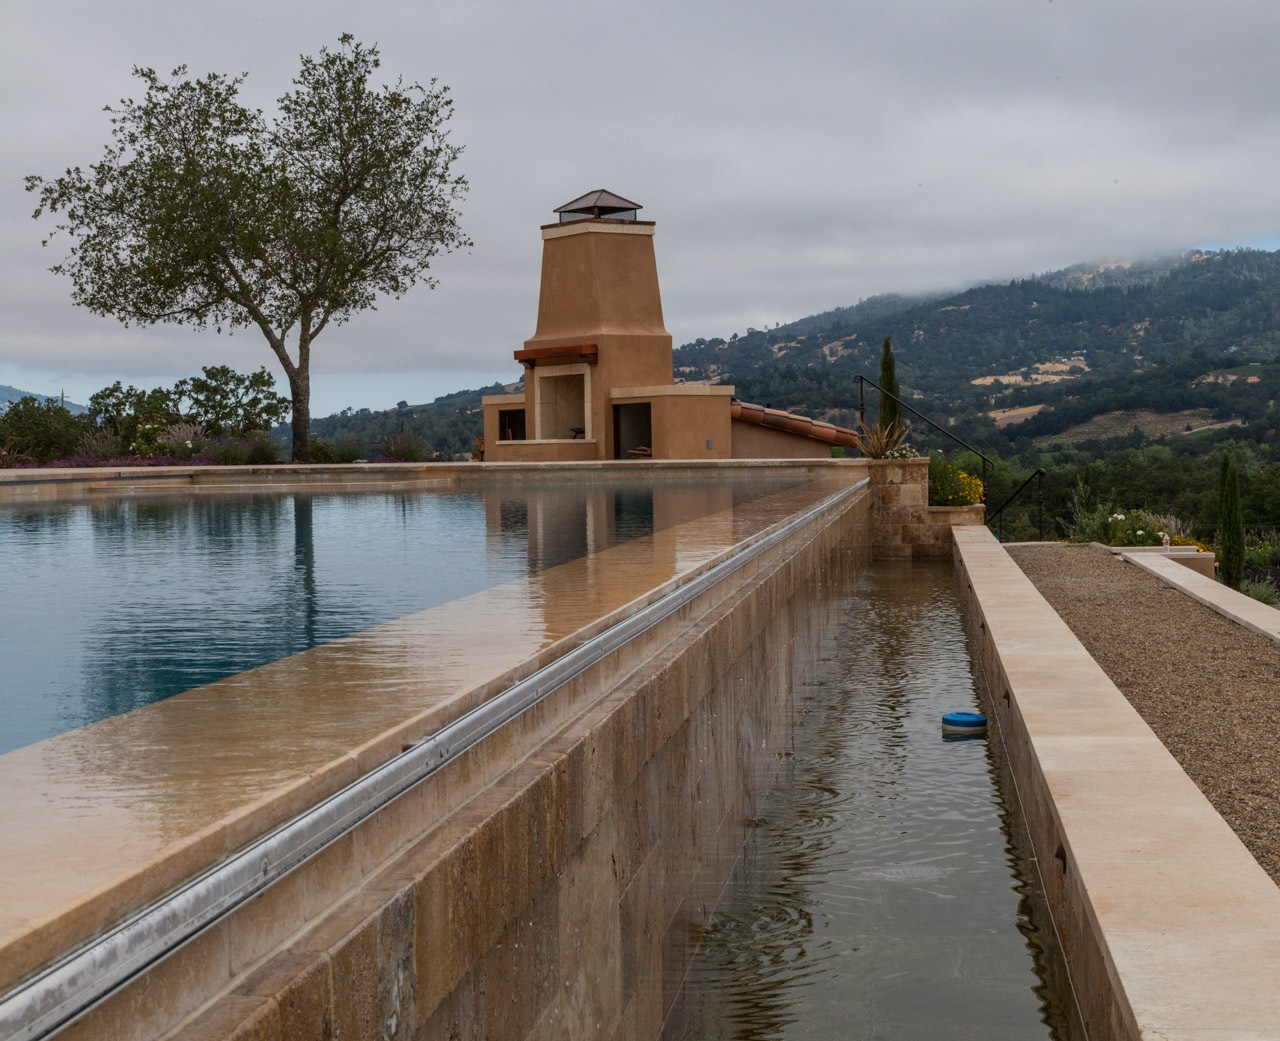 Pool and fireplace in Sonoma County by bwh2017